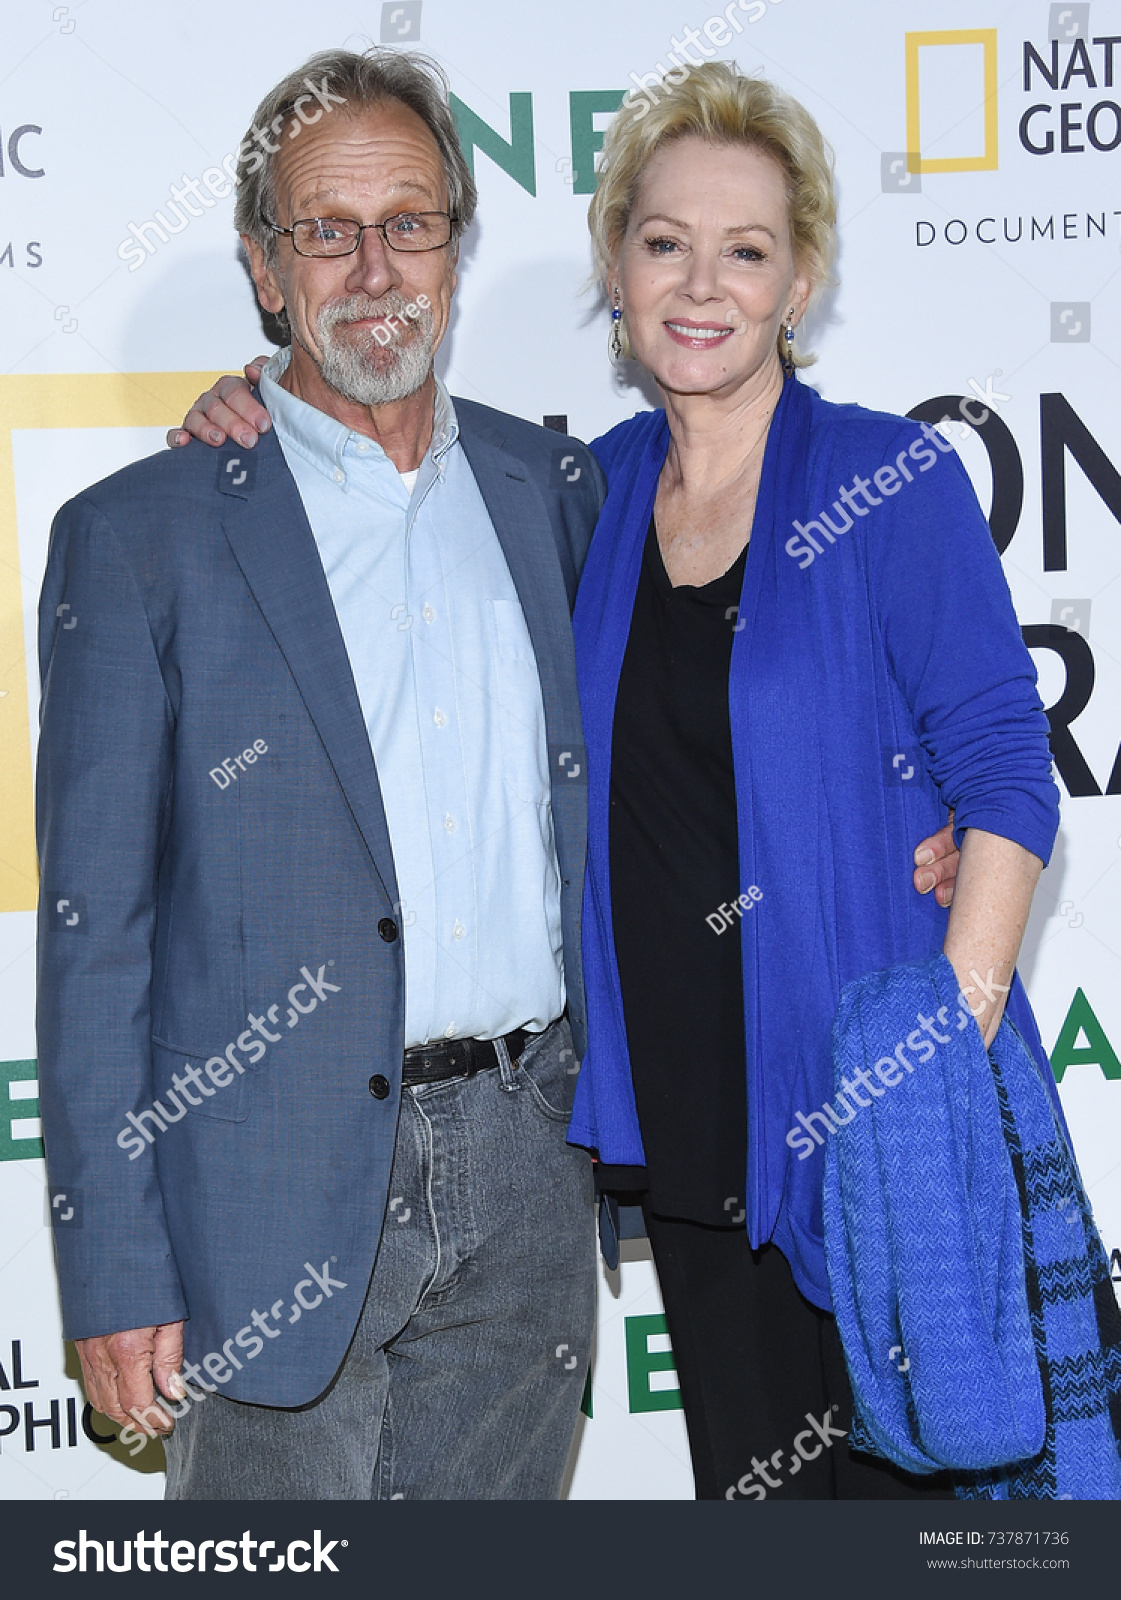 Los Angeles Oct 09 Jean Smart Stock Photo Edit Now 737871736 Jean plays aunt audrey, who took in her sister's two kids after her sister's recent suicide. https www shutterstock com image photo los angeles oct 09 jean smart 737871736